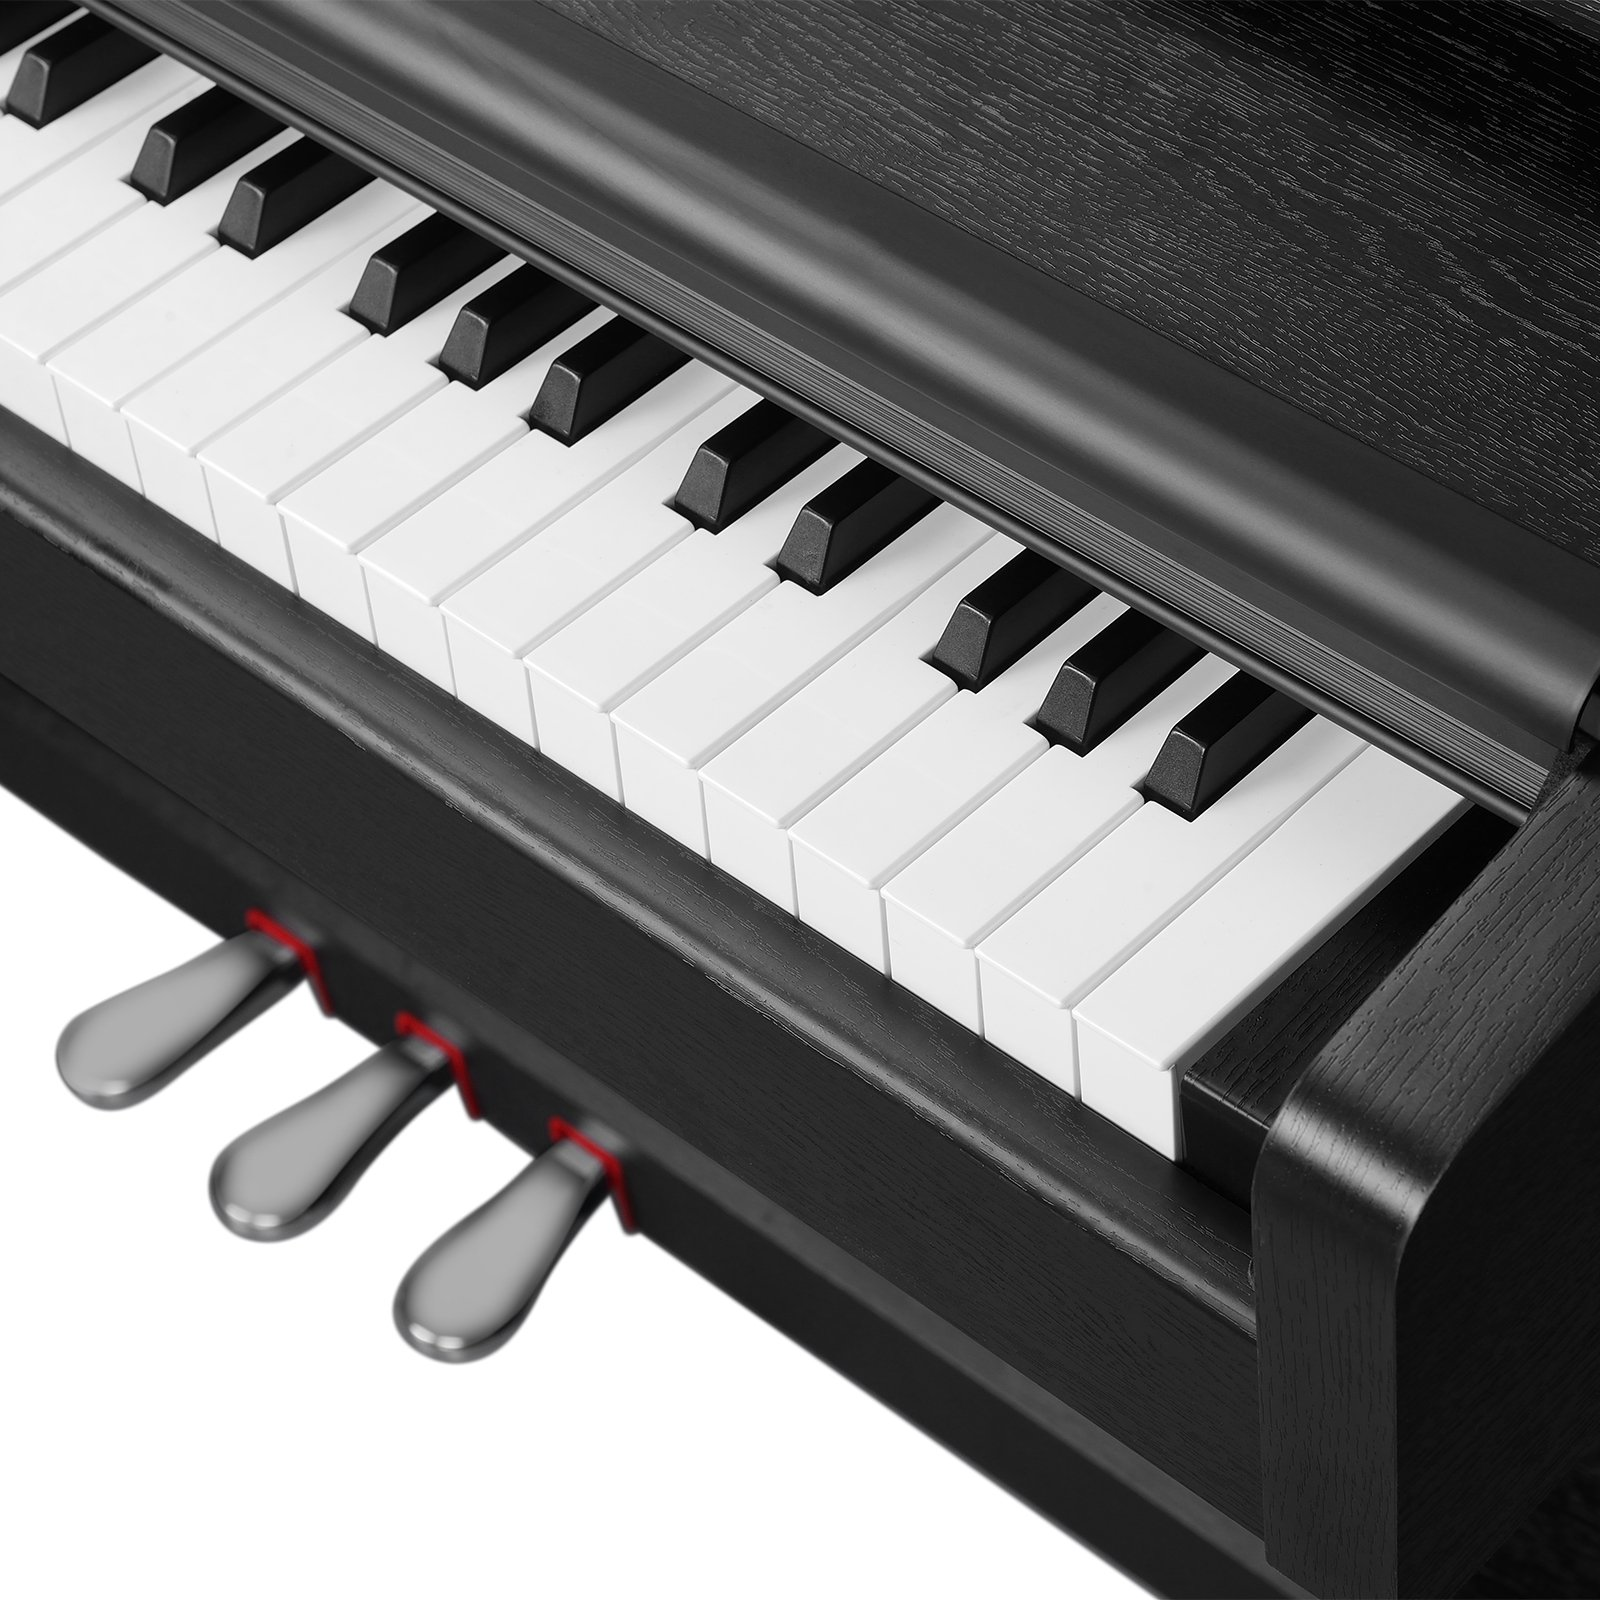 LAGRIMA Digital Piano, 88 Keys Electric Keyboard Piano for Beginner(Kids/Adults) w/Music Stand+Power Adapter+3 Metal Pedals+Instruction Book, 2 Headphone Jack/Midi/USB Audio Output by LAGRIMA (Image #7)